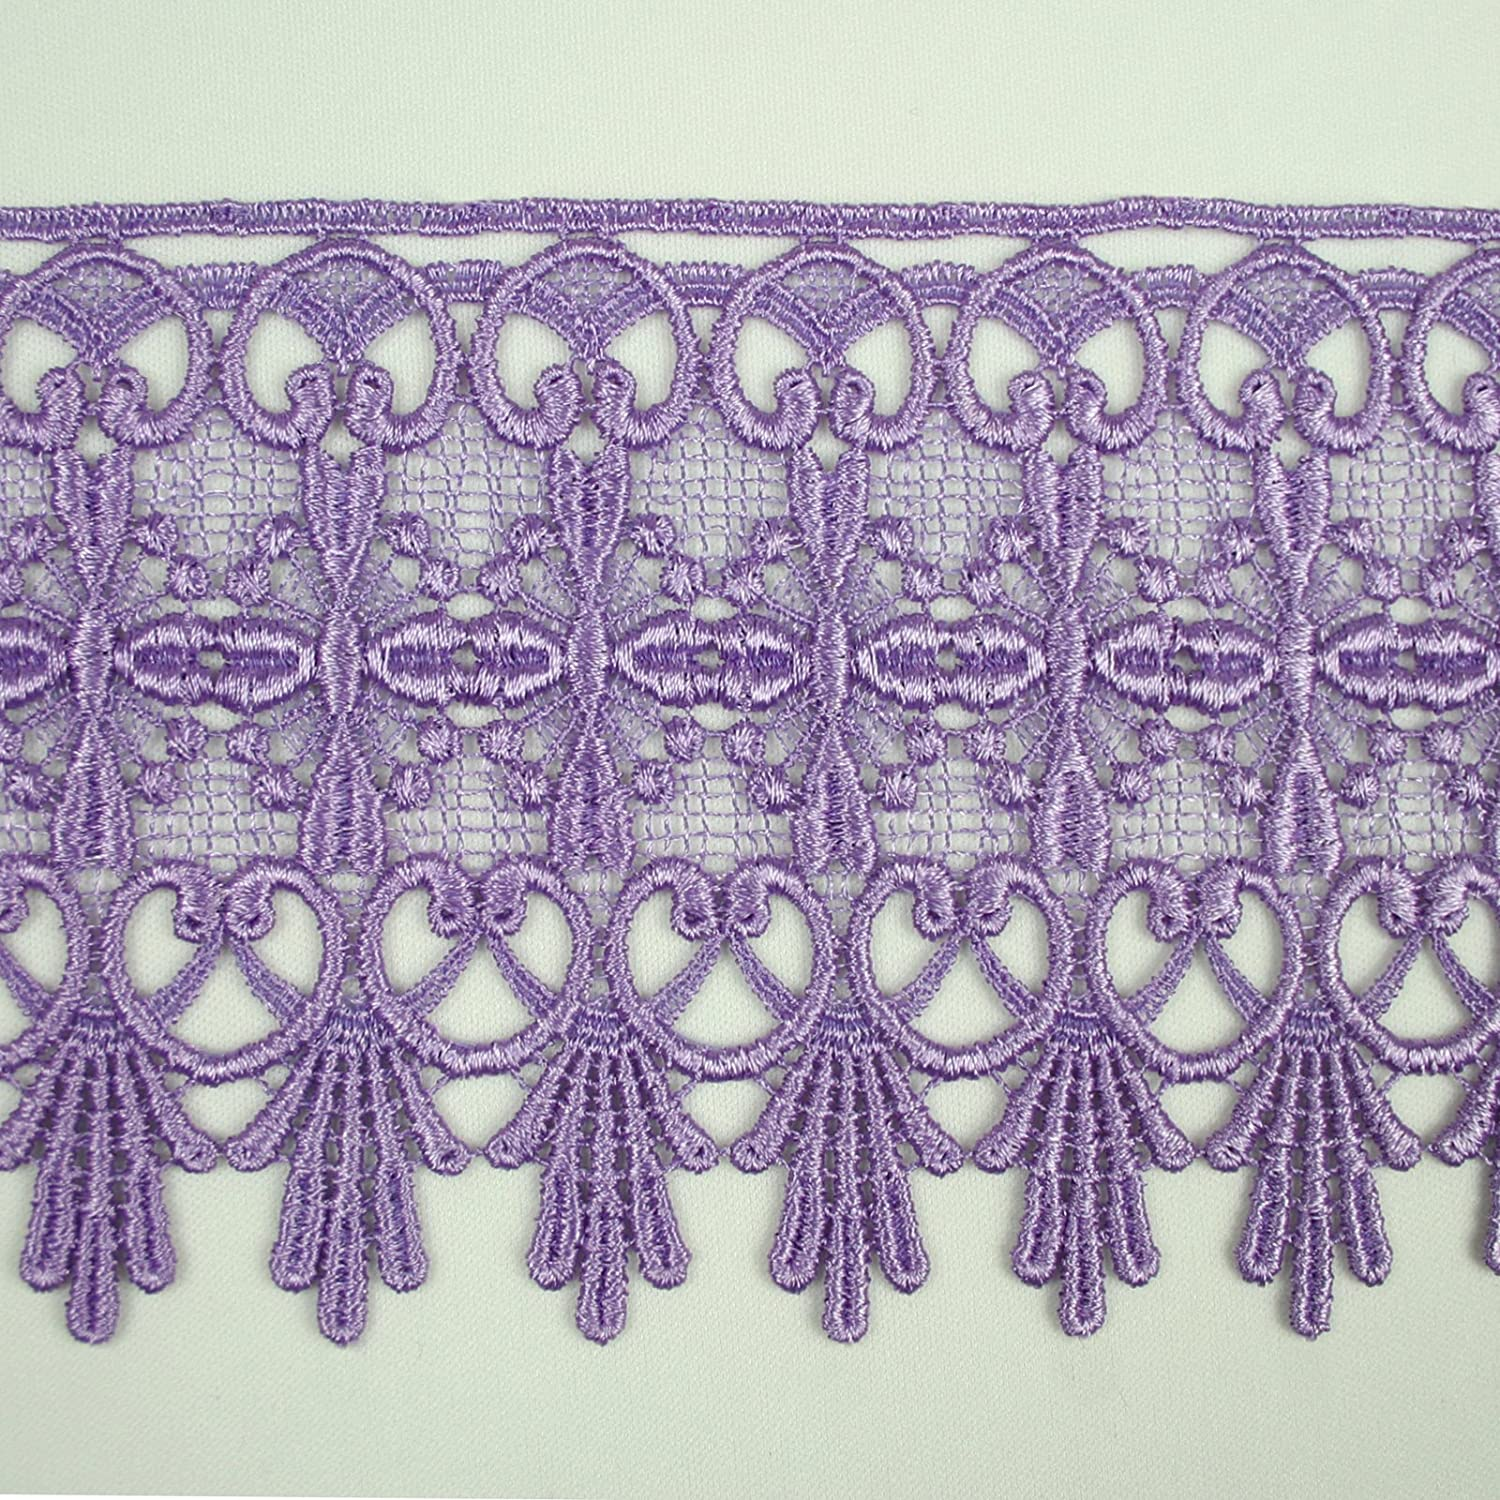 """Lilac Lavender Purple 5/8""""~5-1/8"""" Embroidered Venice Lace Trim Guipure By Yard (17823 (4.75')) Leader Textiles & Garments Co."""